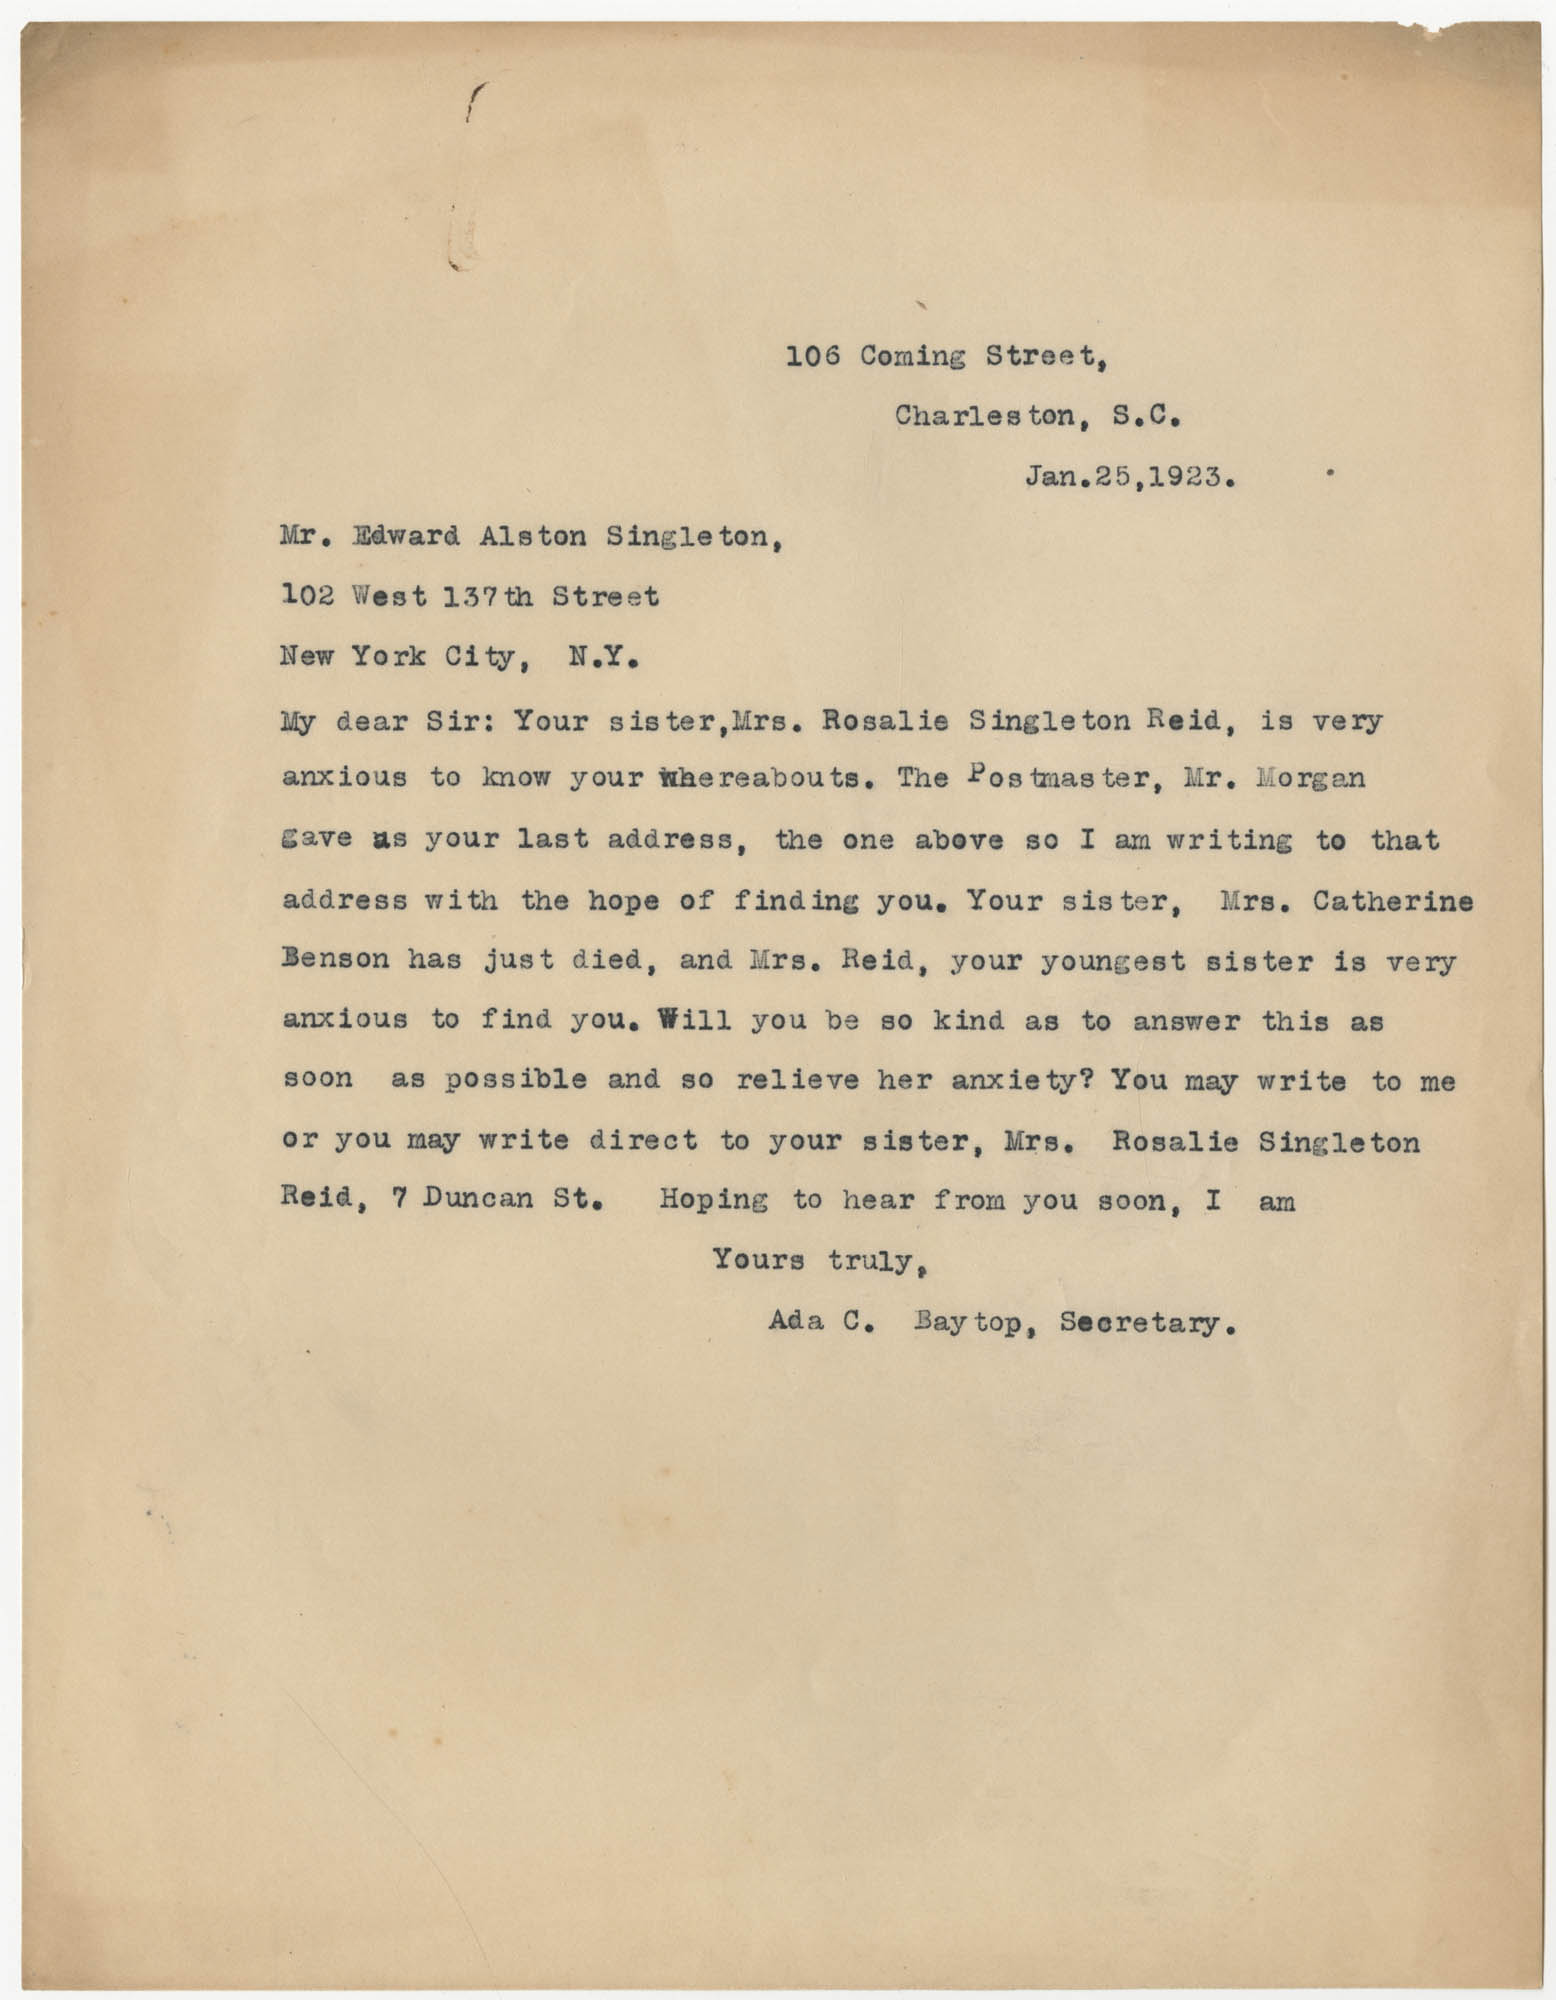 Letter from Ada C. Baytop to Edward Alston Singleton, January 25, 1923